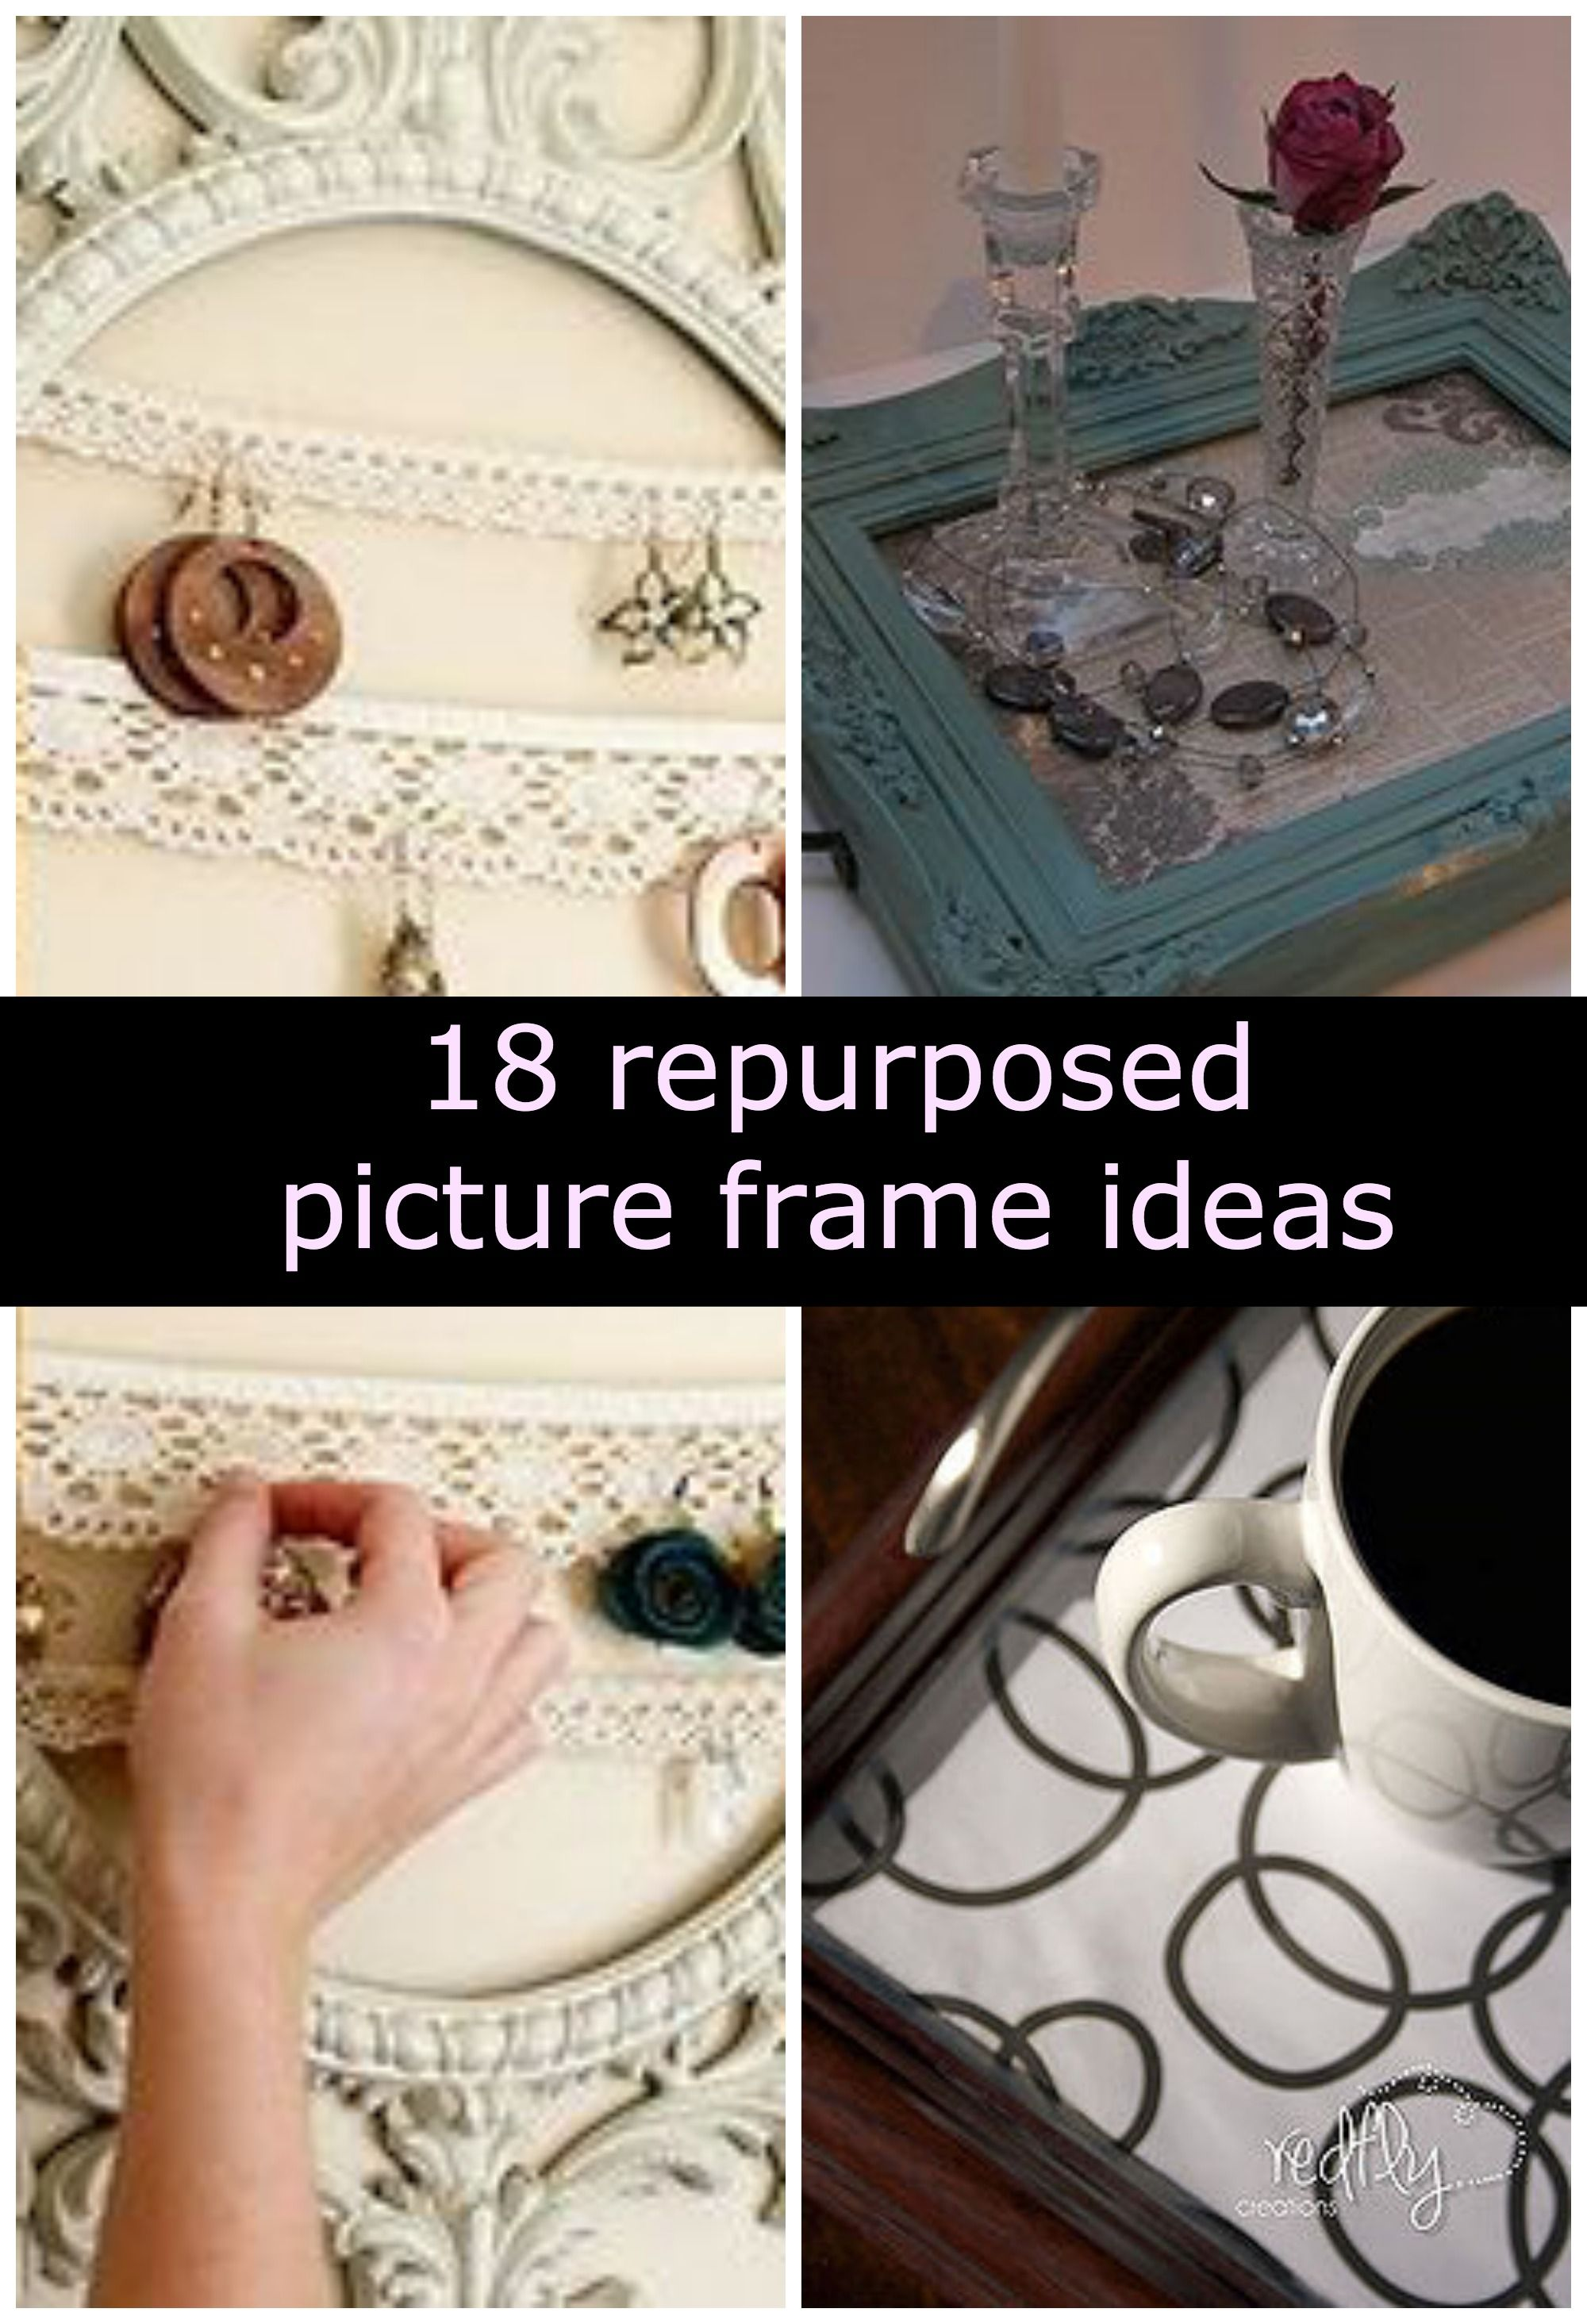 Repurposed picture frames Idea Box by Cyndi @ The Decorating Chica ...